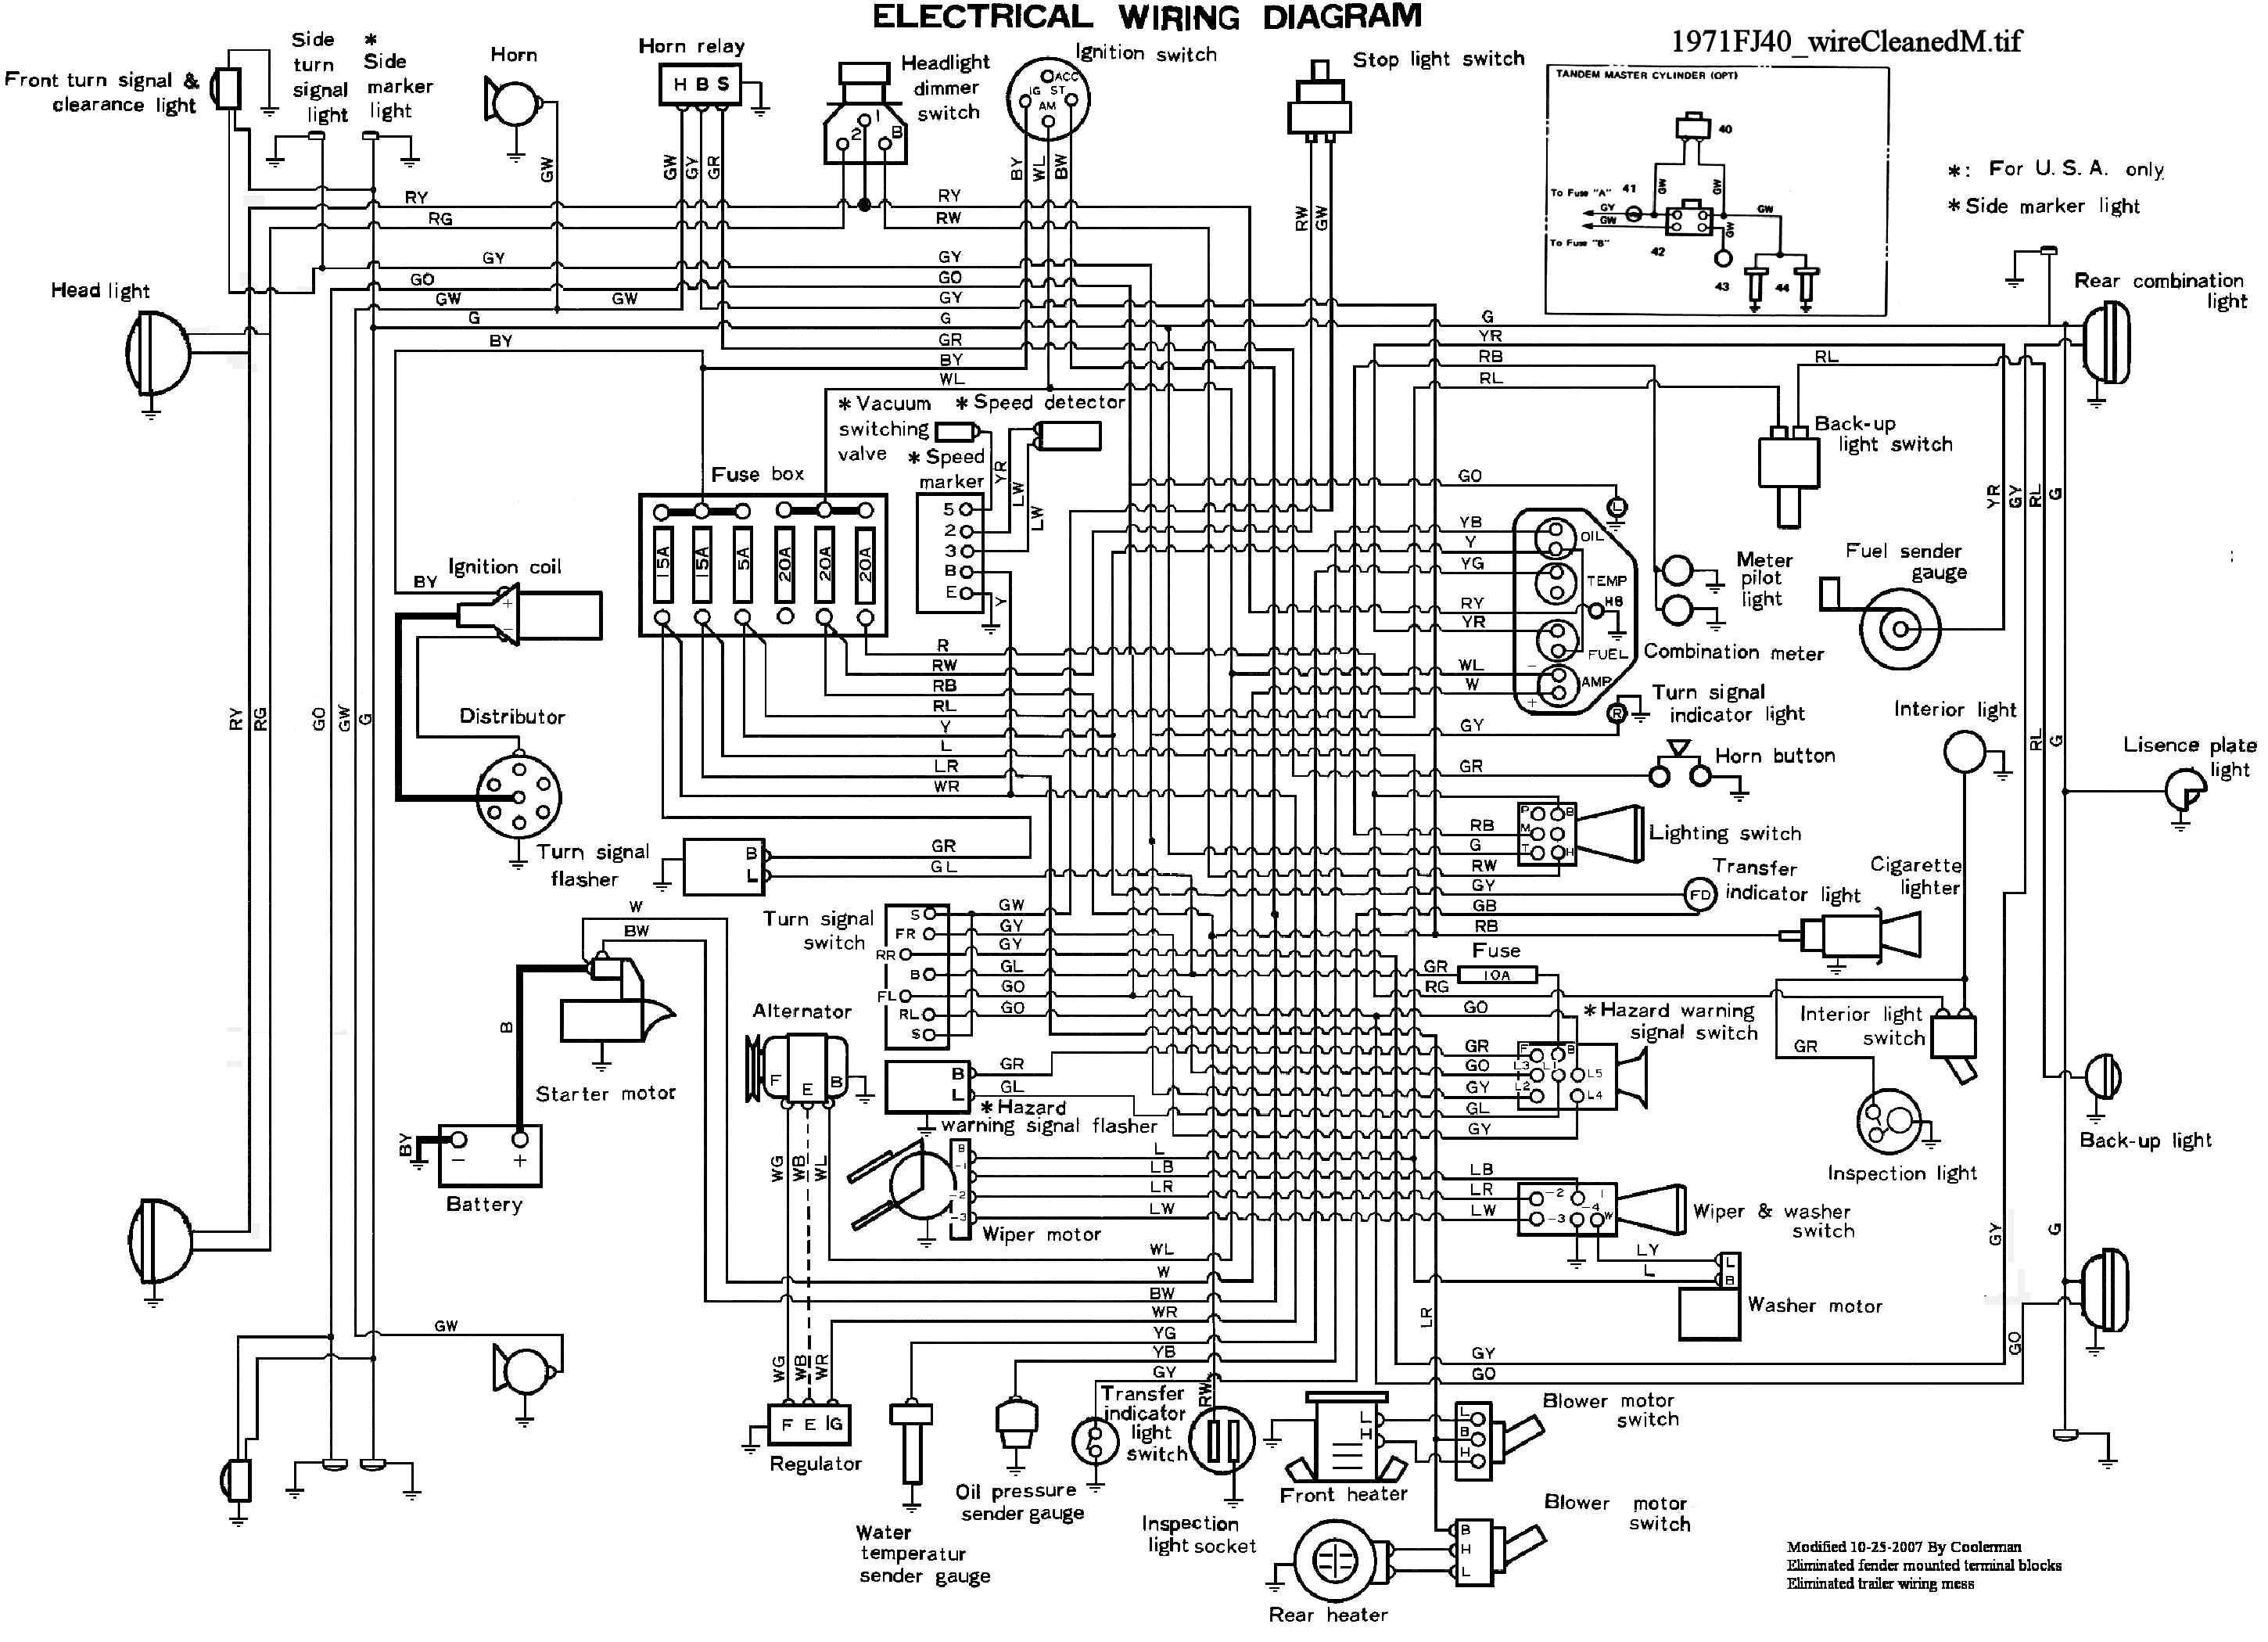 turn signal circuit diagram wiring schematic diagram 2003 pt cruiser 2 4 turbo engine wiring diagram toyota land cruiser turn signal wiring diagram wiring library chevy turn signal diagram cruiser wiring toyota